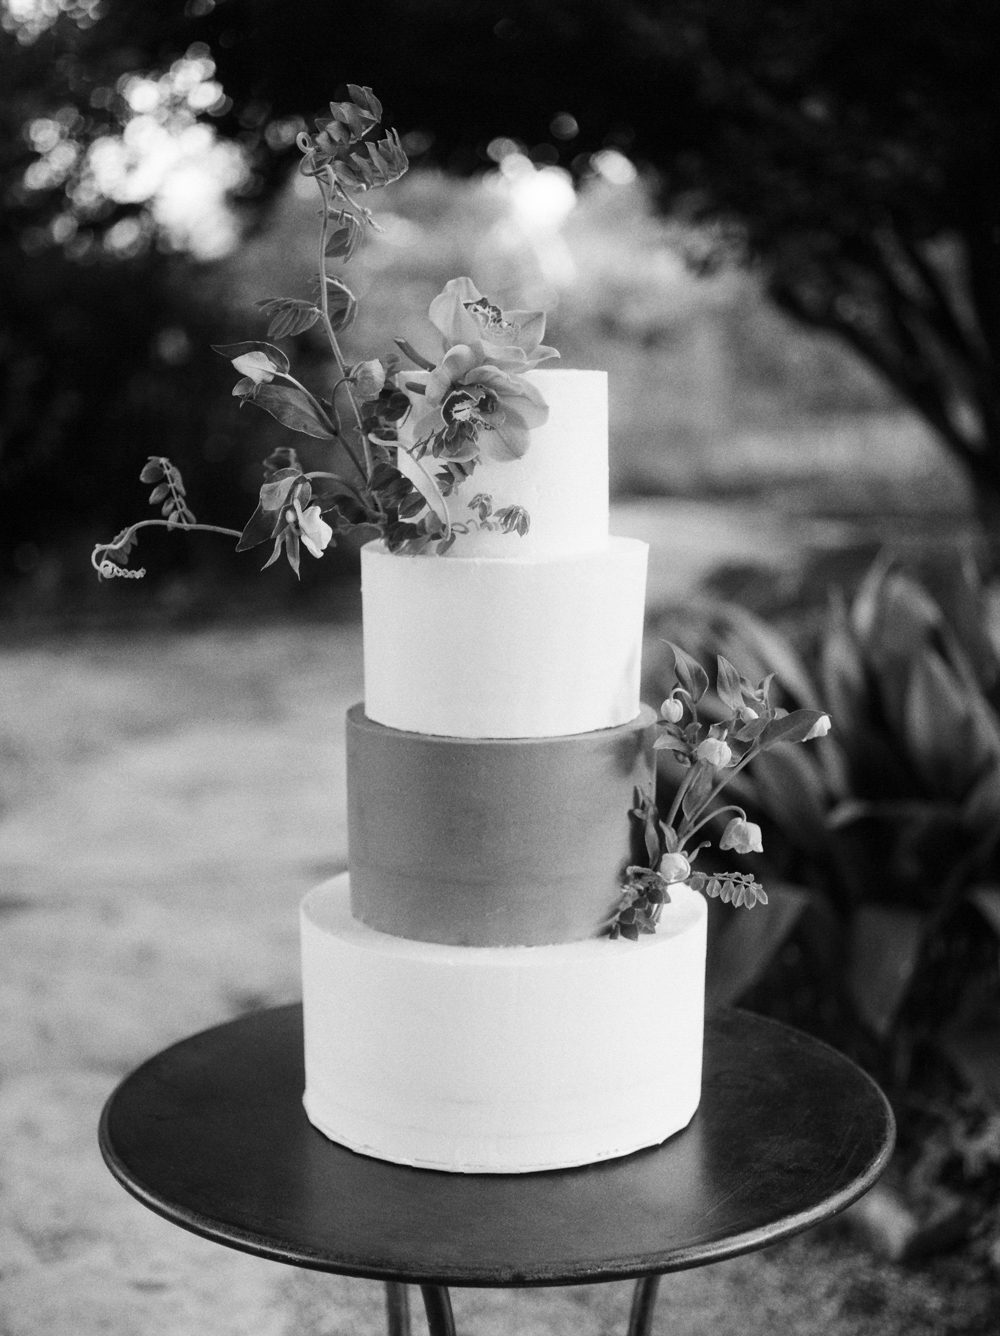 christine-gosch-barr-mansion-austin-wedding-venues-venue-simple-film-photographer-wedding-sparrow-alexandra-grecco-sprout-floals-feathers-and-frosting-classic-inspired-photography-mayhar-design06.jpg